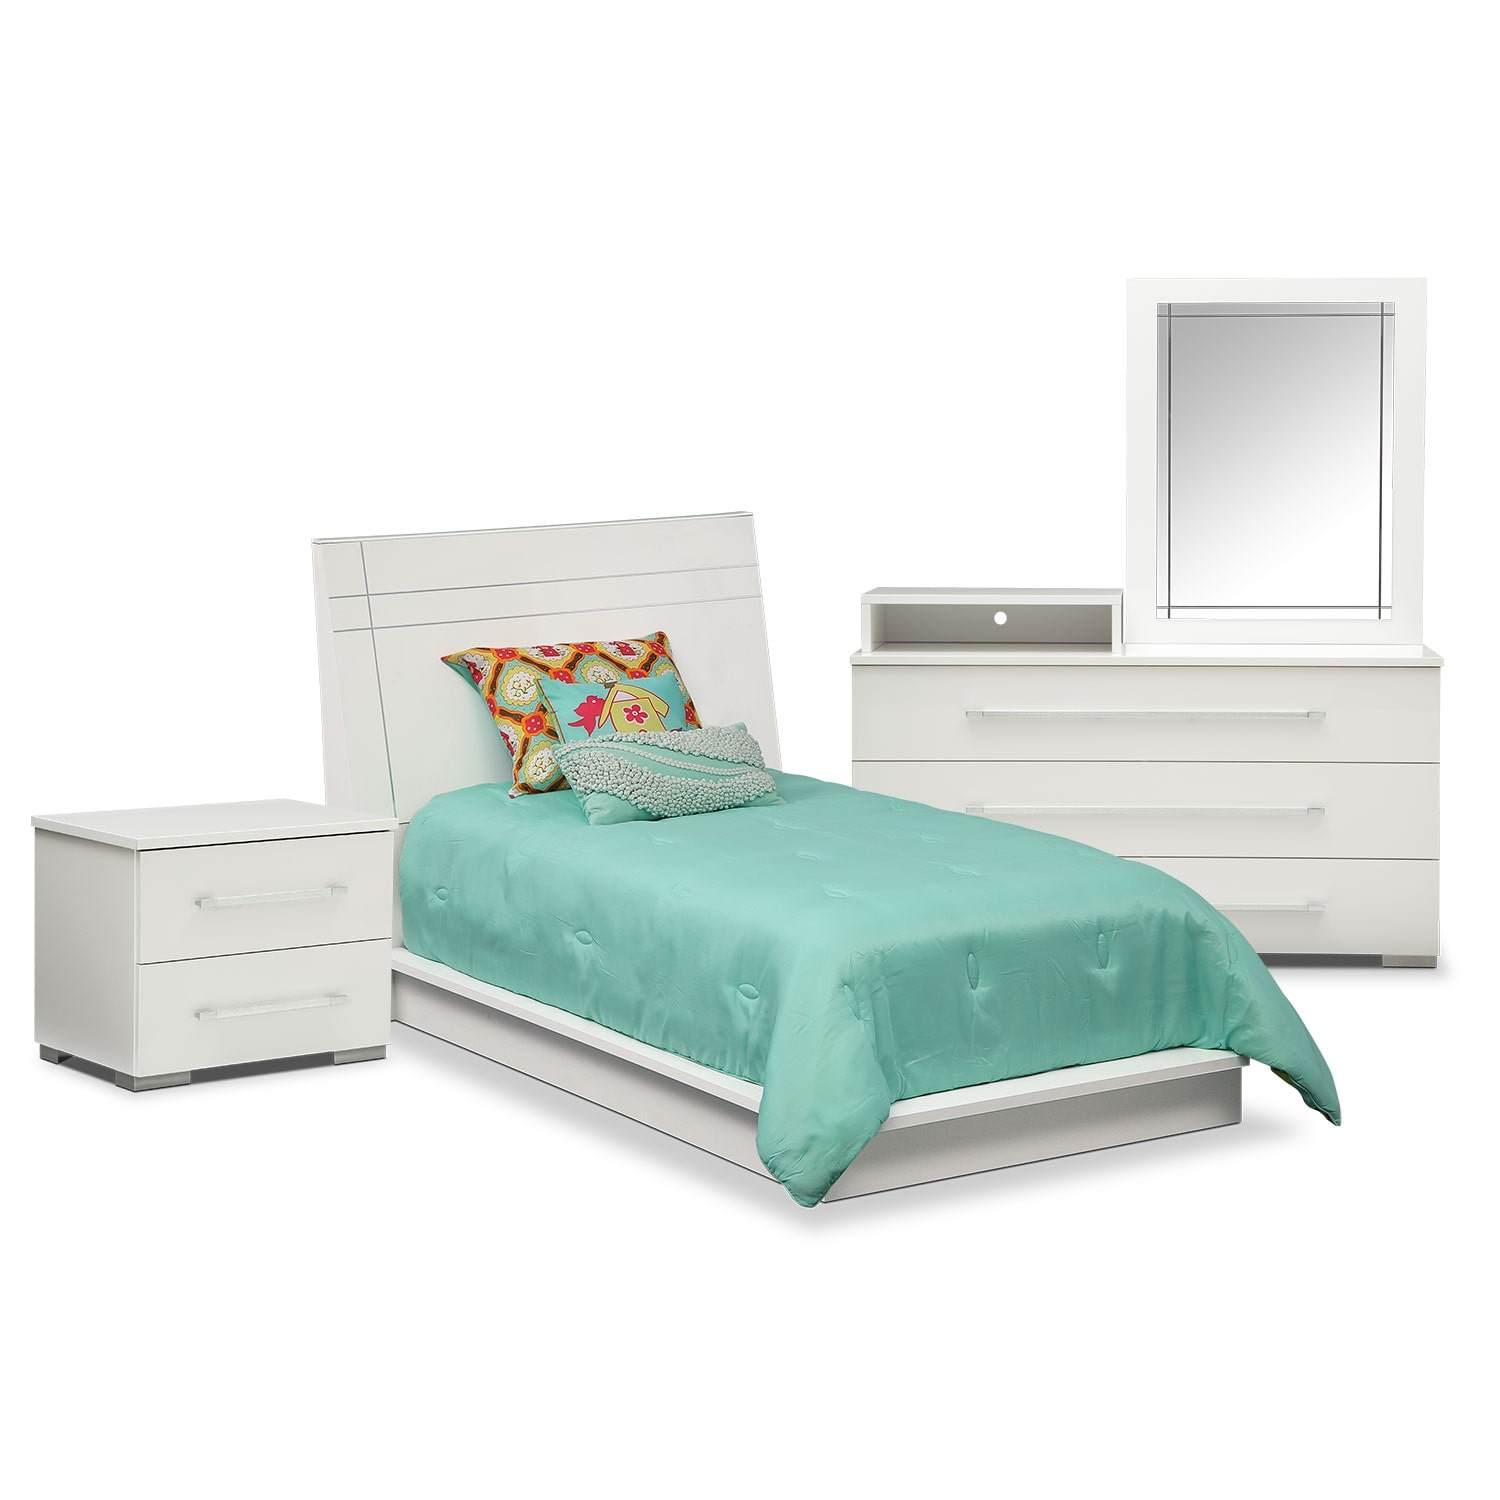 Bedroom Furniture - Dimora 6-Piece Twin Panel Bedroom Set with Media Dresser - White